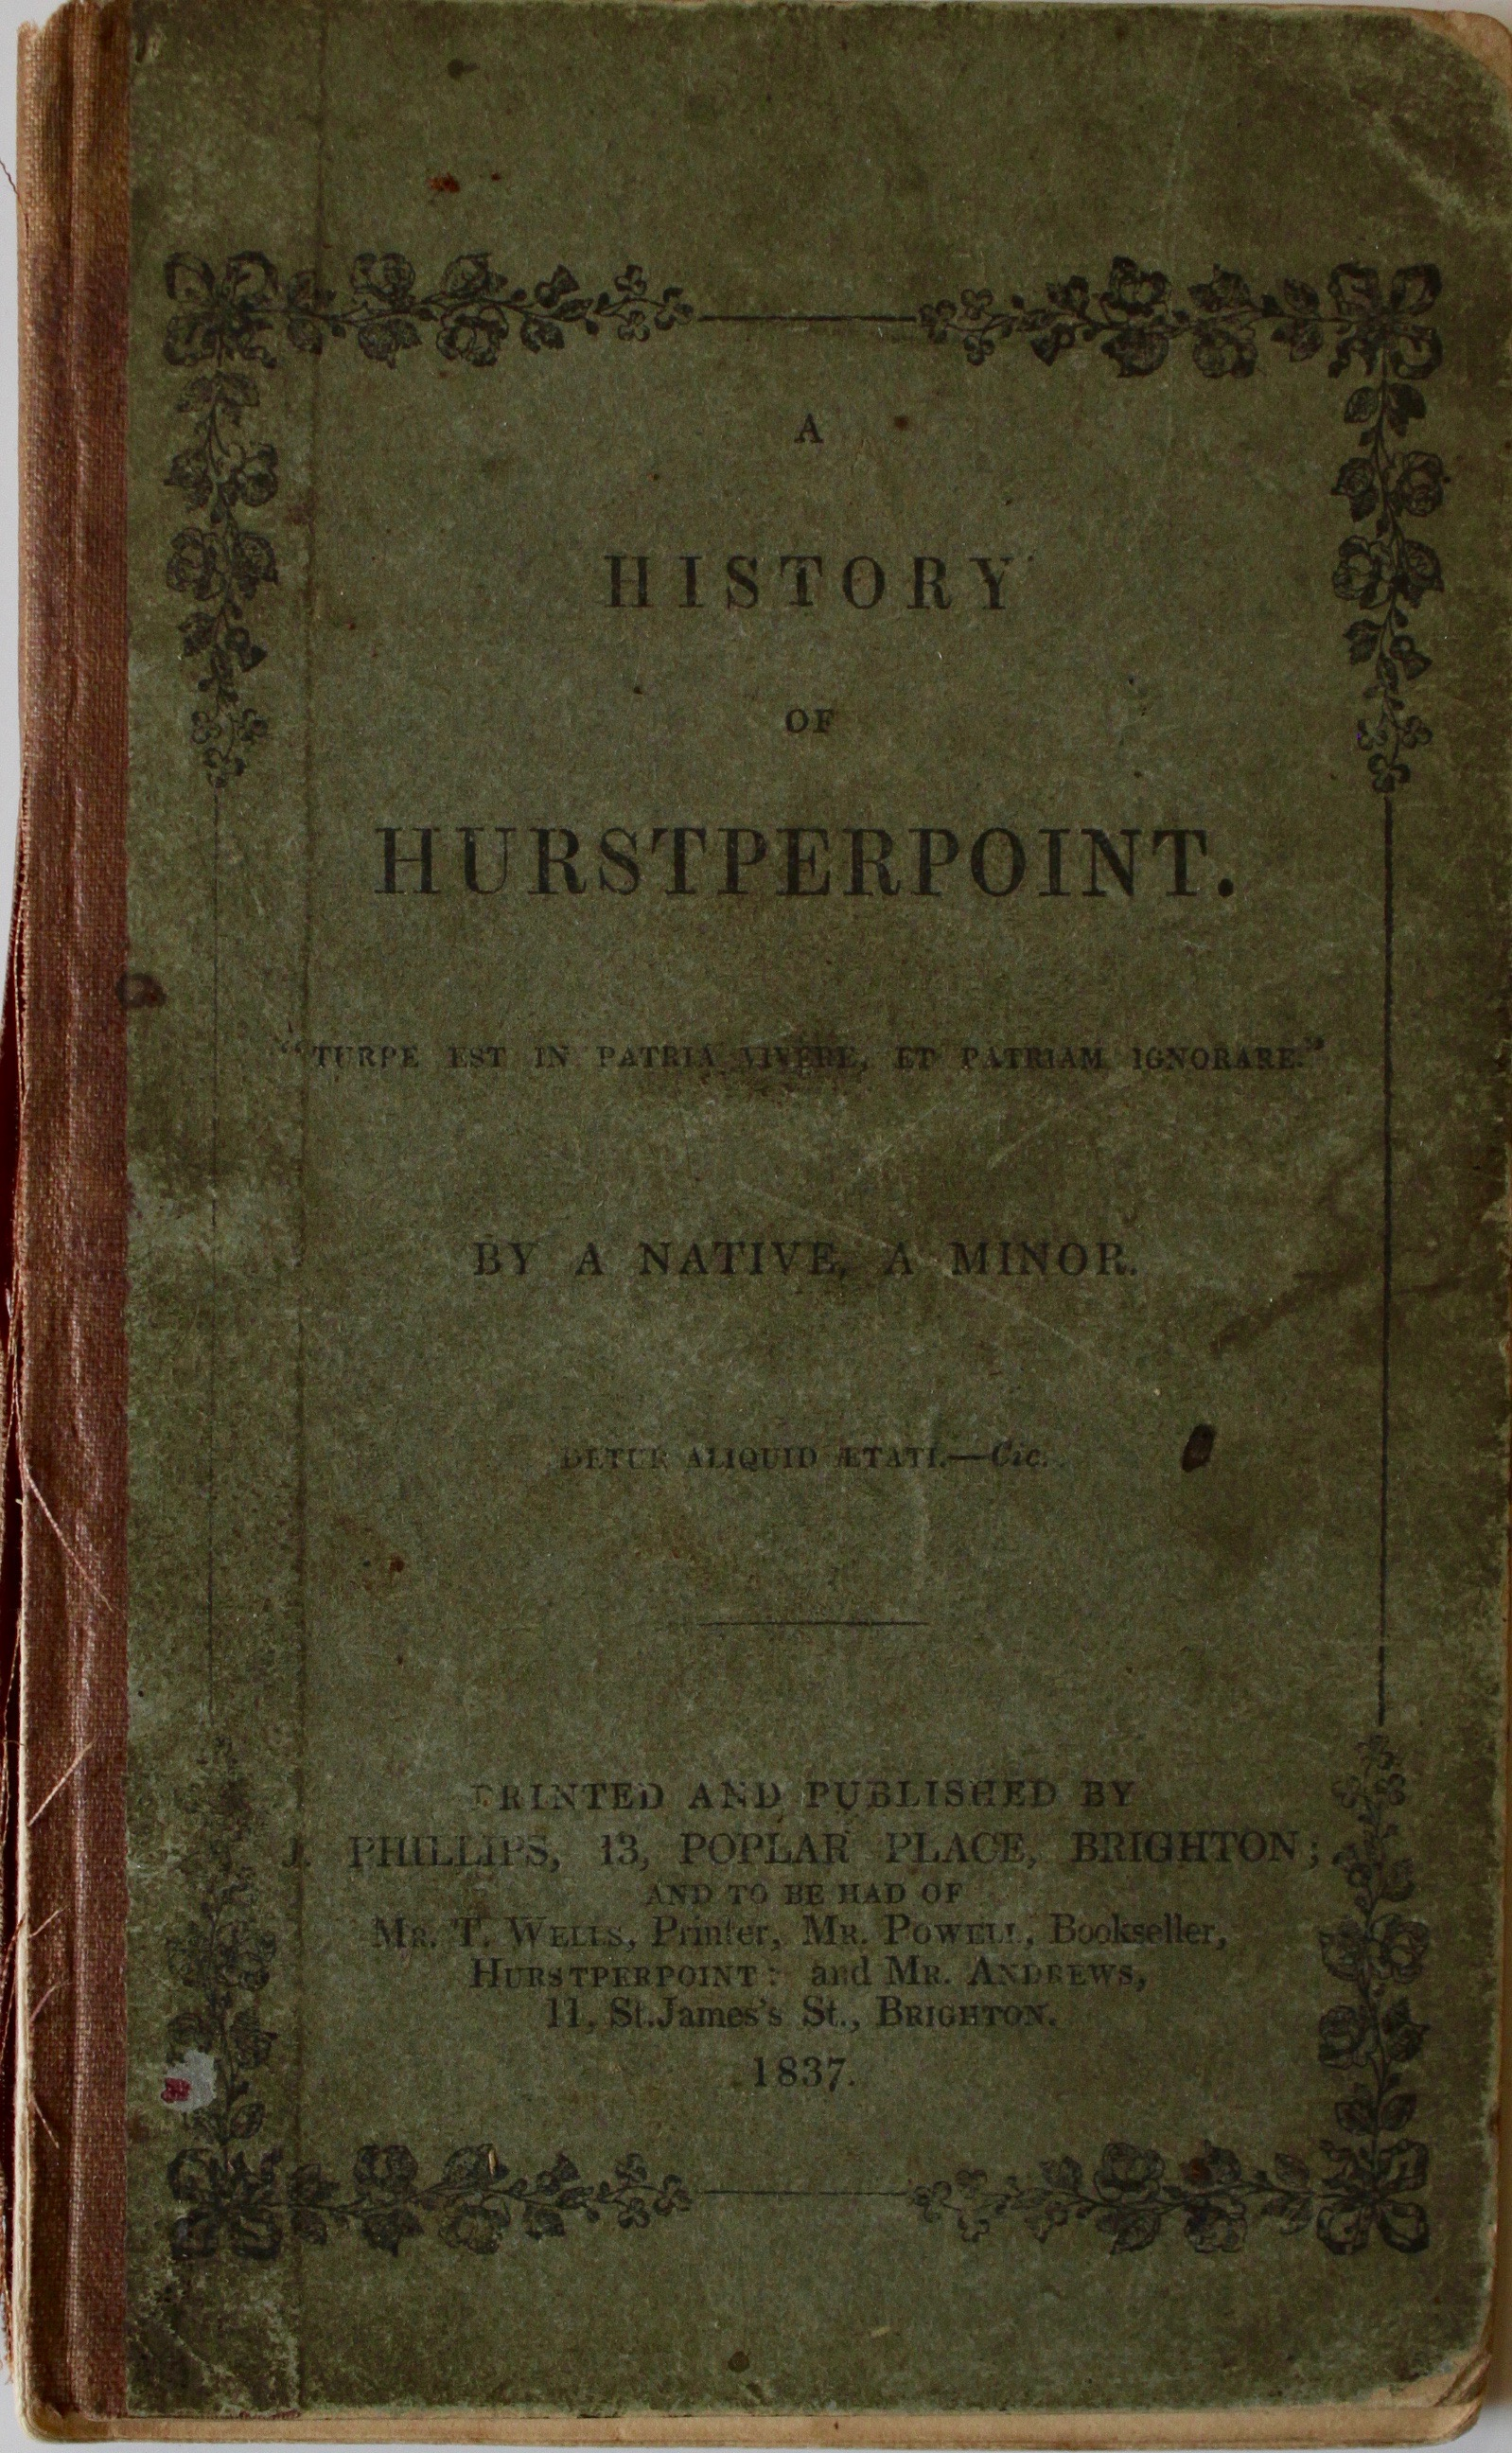 Image for A History of Hurstperpoint, by a Native, a Minor.